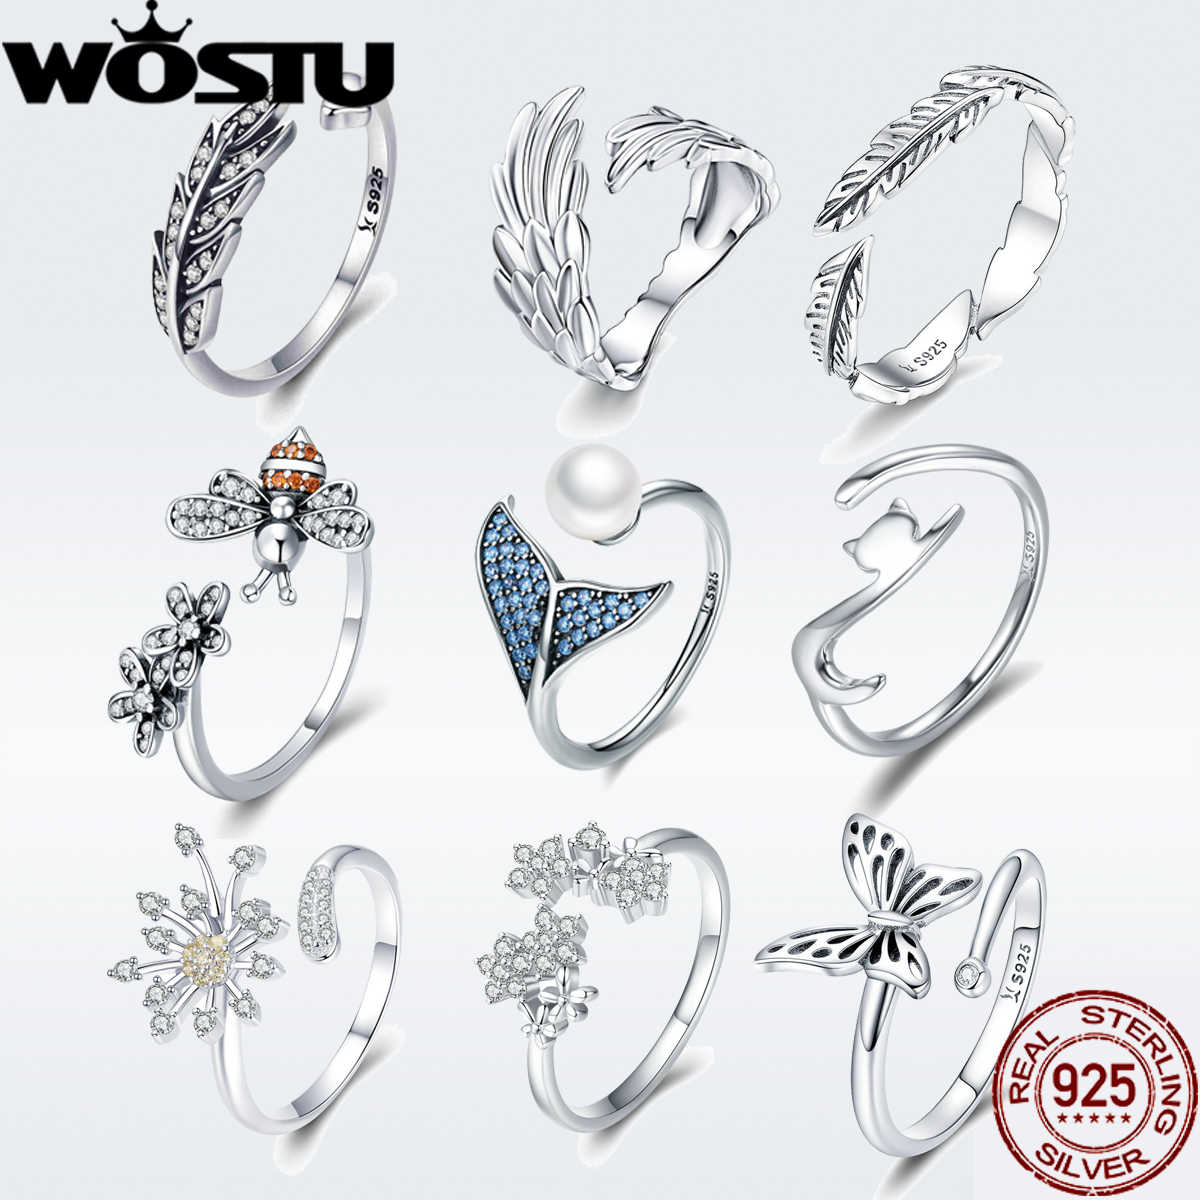 WOSTU NEW 925 Sterling Silver Vintage Style Leaves Clear CZ Adjustable Rings for Women Fashion S925 Silver Jewelry Gift DXR313